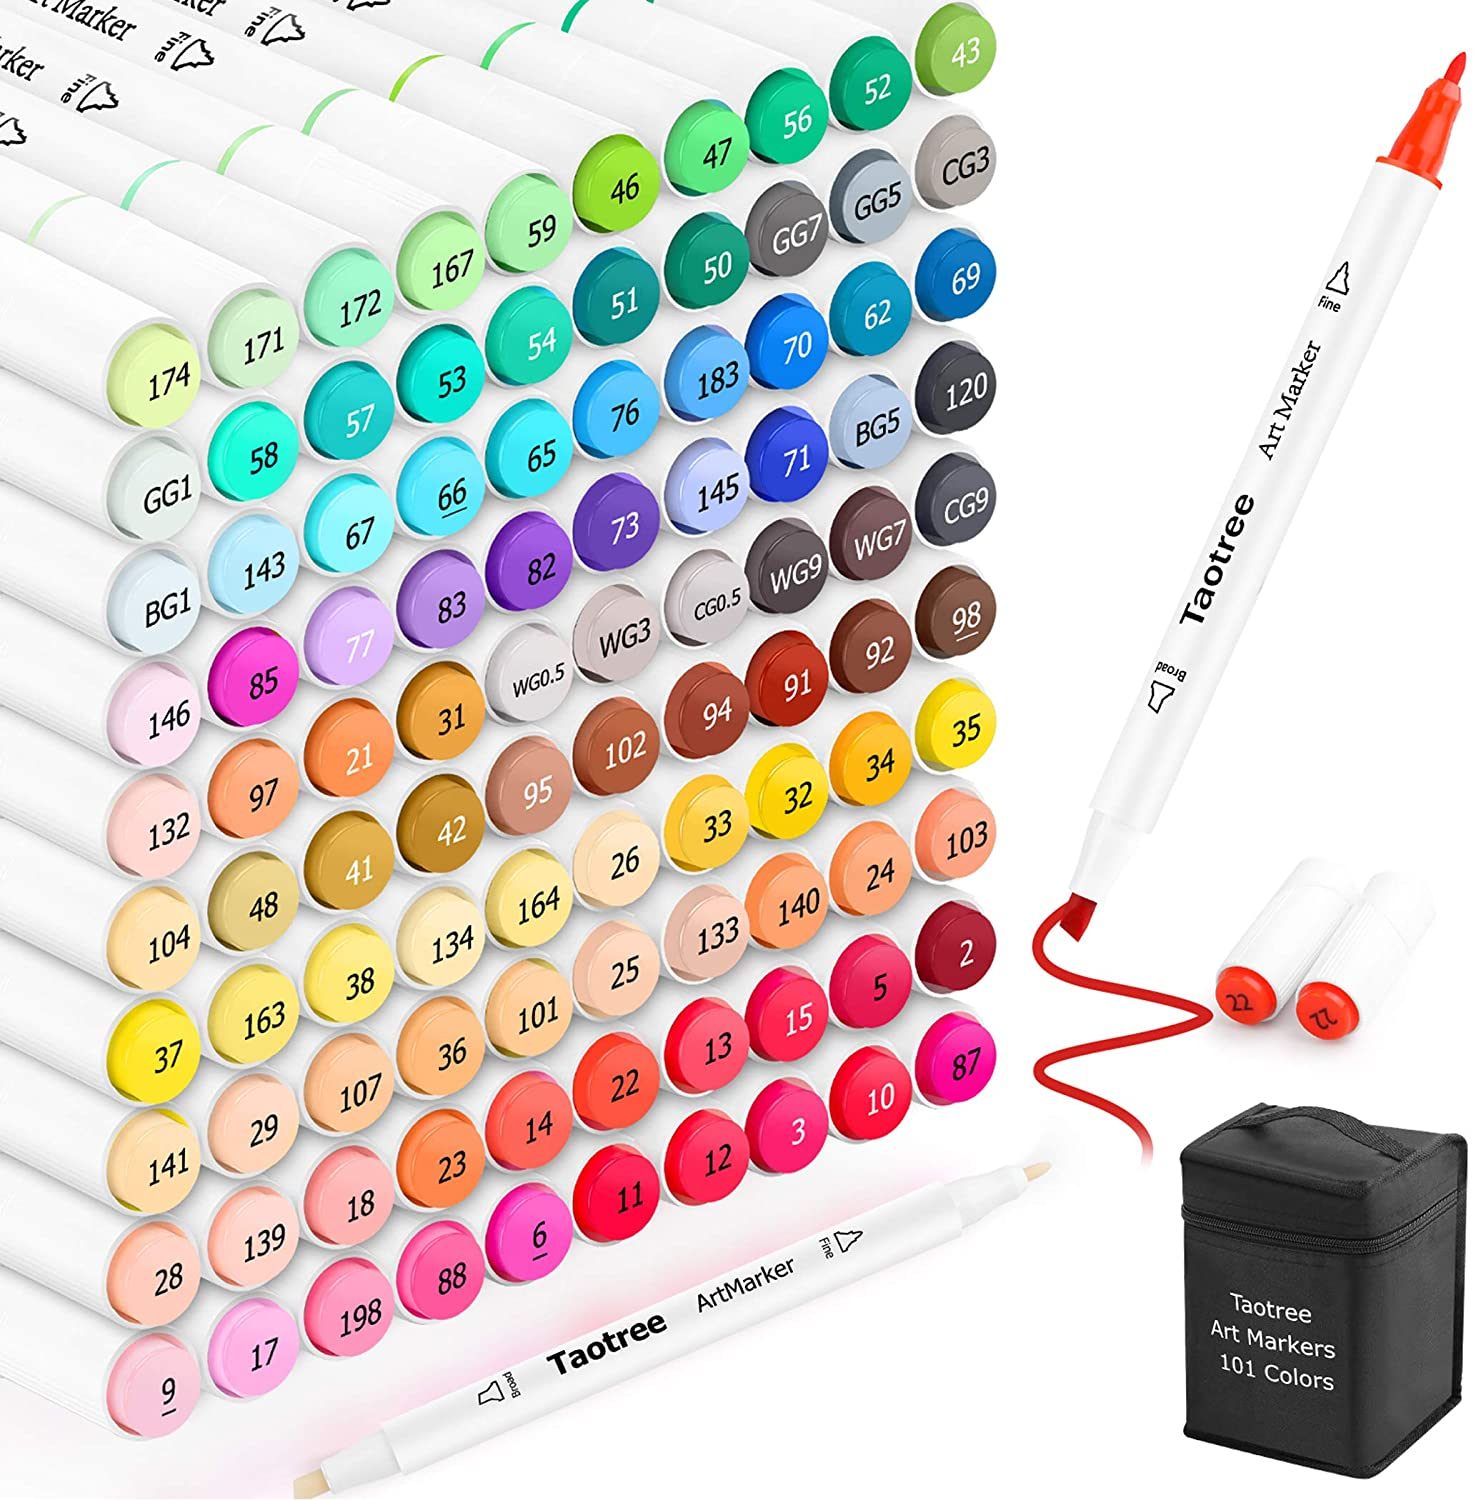 Taotree 101 Colors Alcohol Based Markers, Dual Tips Permanent Art Markers Highlighter Pen Sketch Markers for Kids Adult Coloring Drawing Sketching Illustration and Card Making